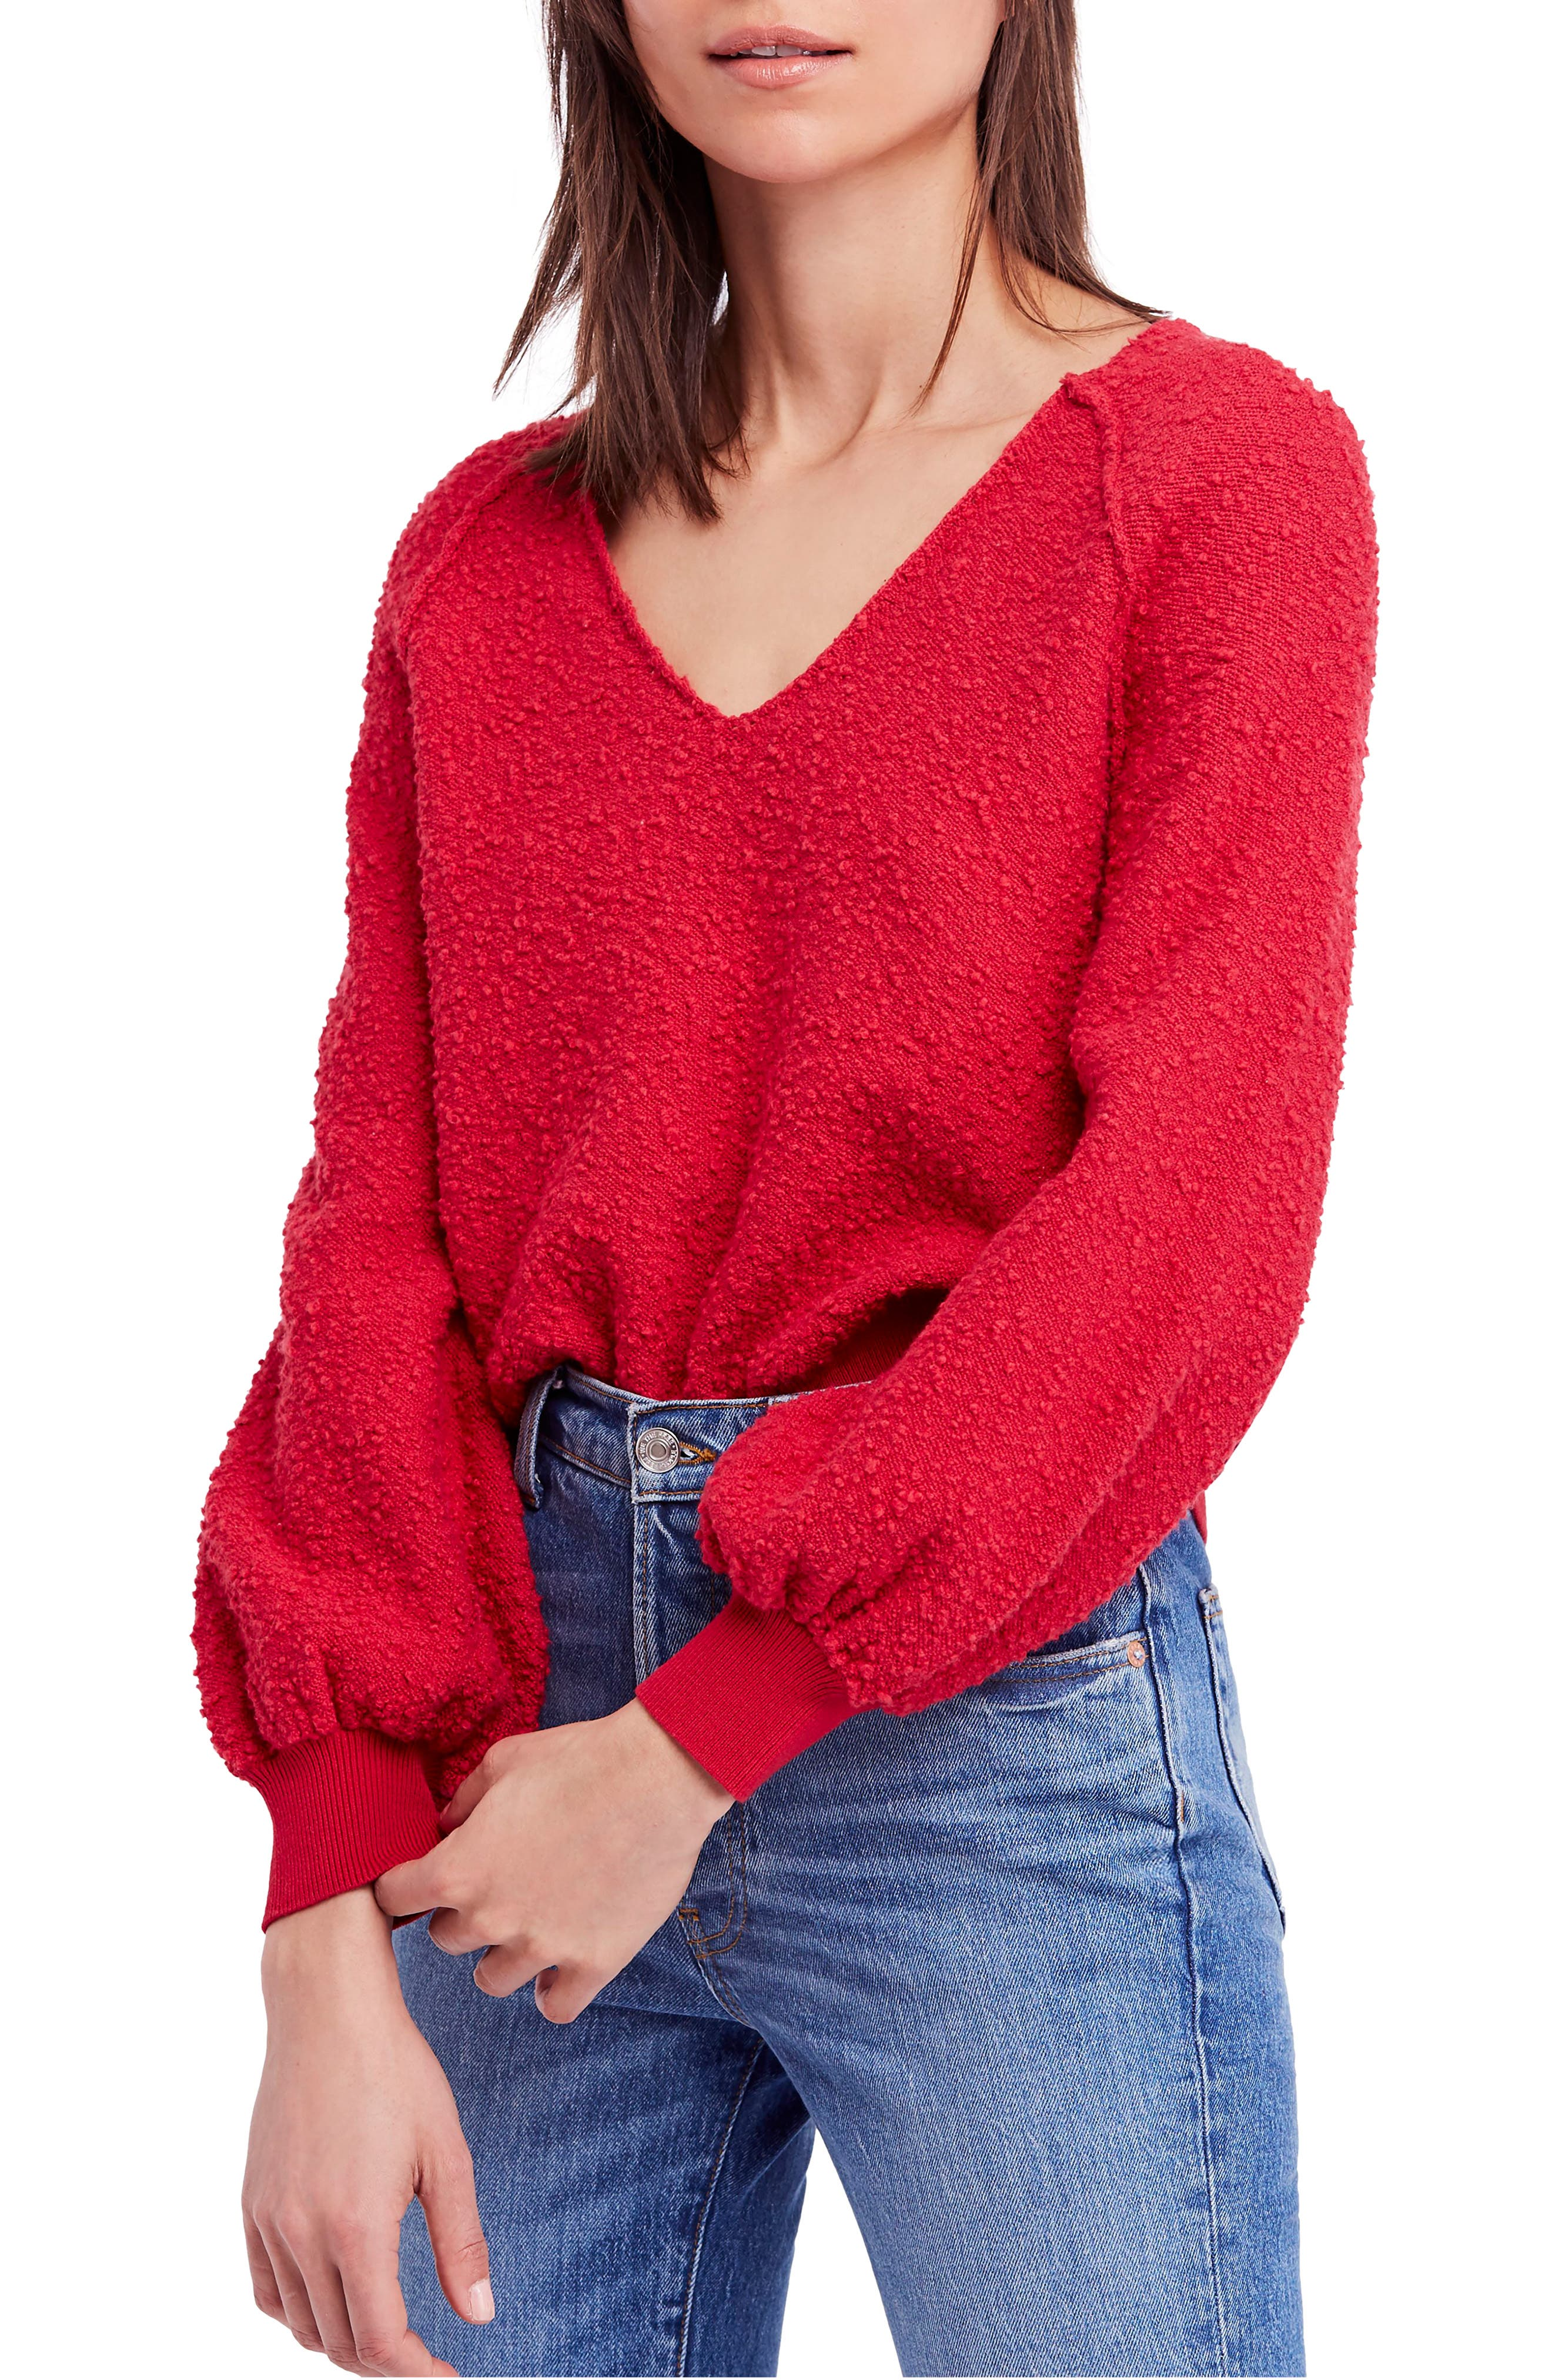 Found My Friend Sweater,                             Main thumbnail 1, color,                             Red